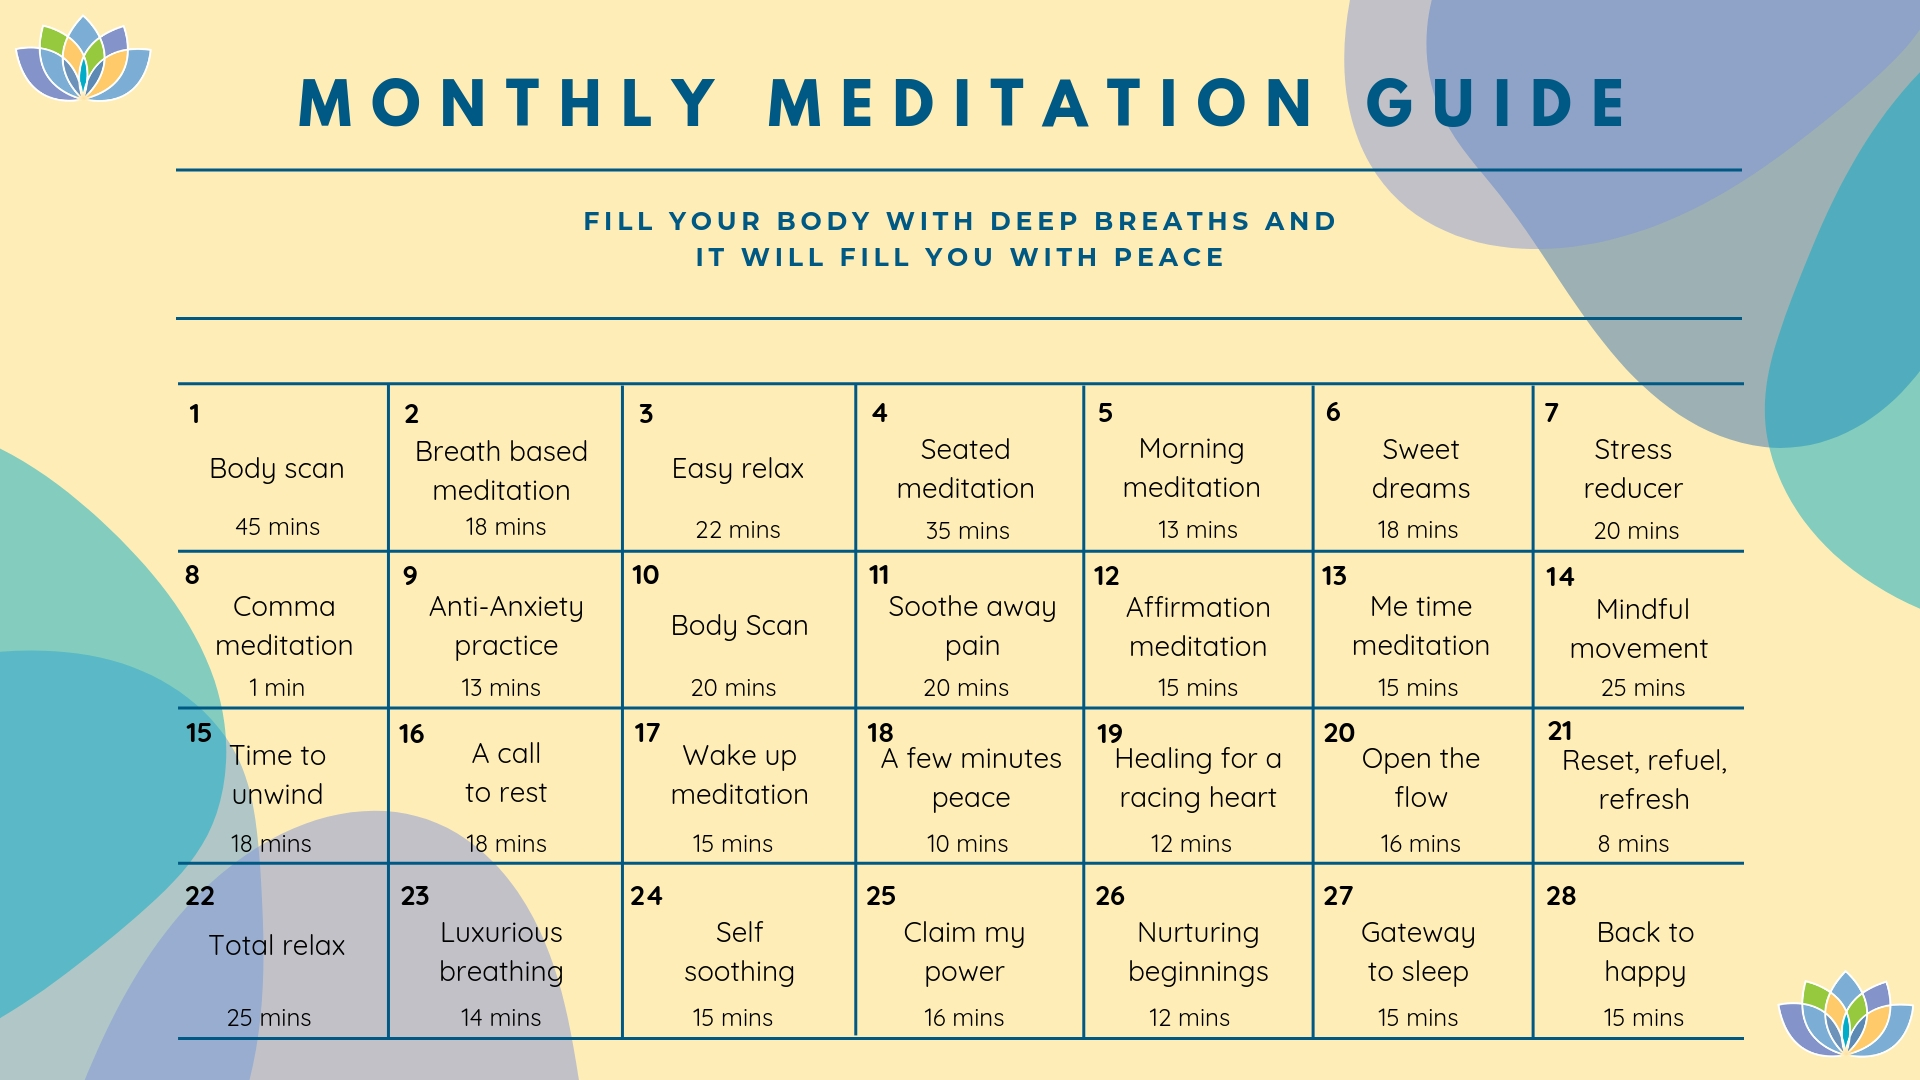 Monthly meditation guide